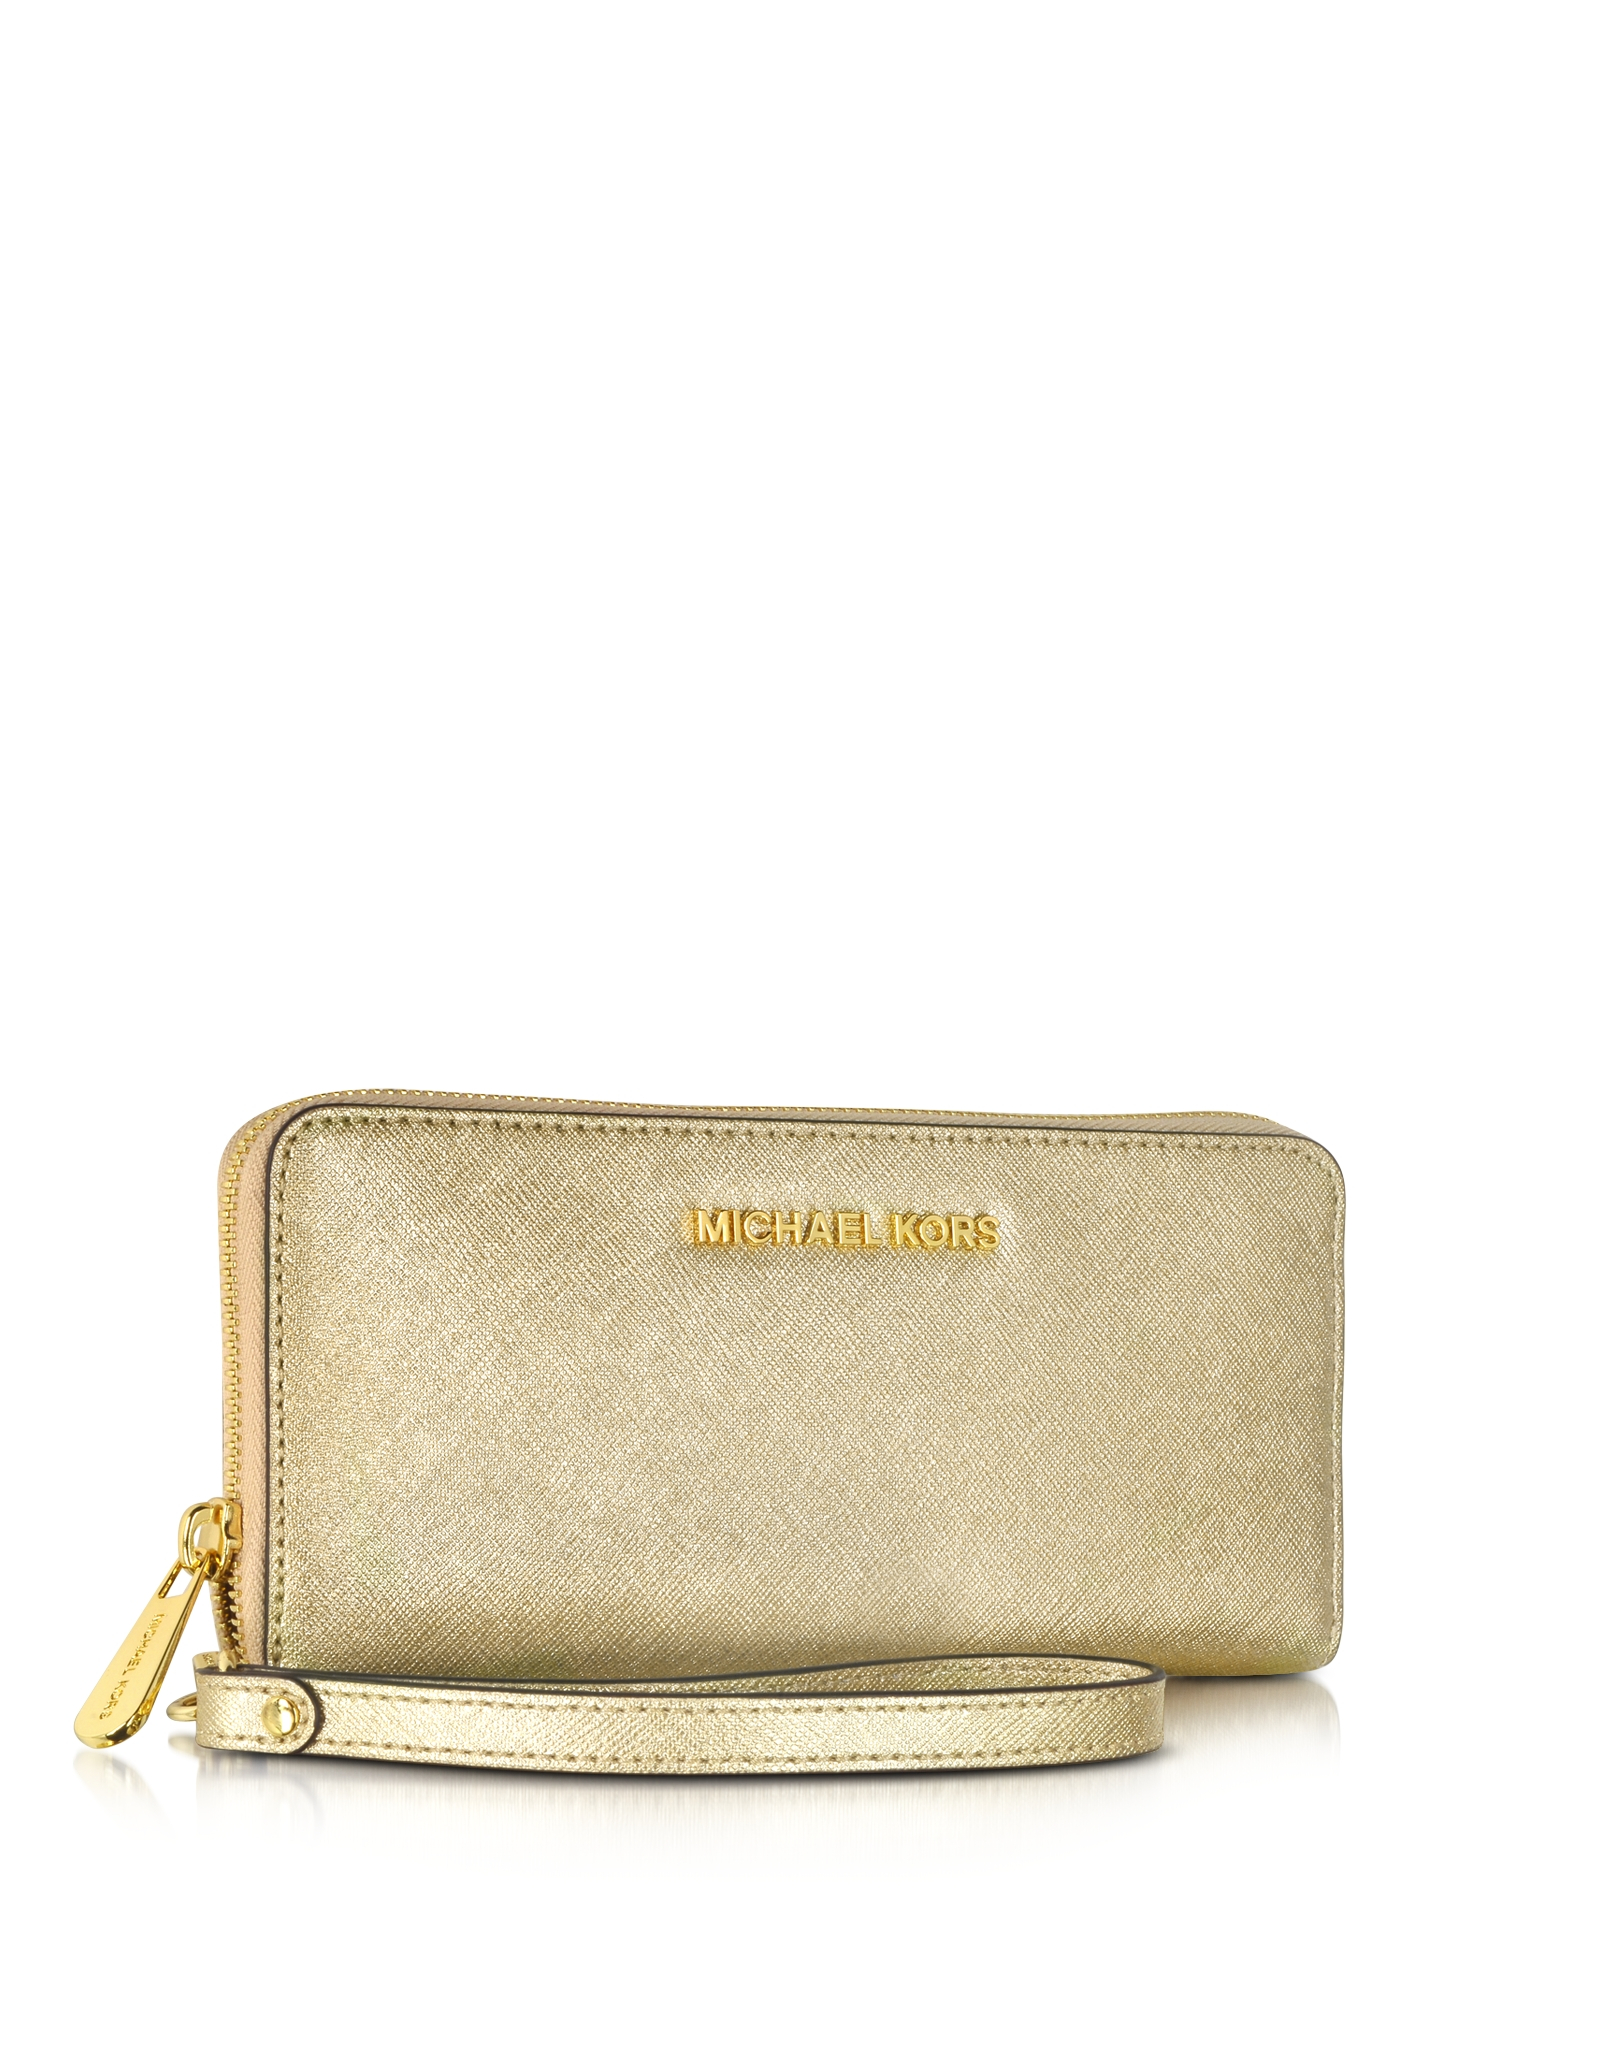 5f465b90dc88 Michael Kors Jet Set Travel Pale Gold Metallic Saffiano Leather ...